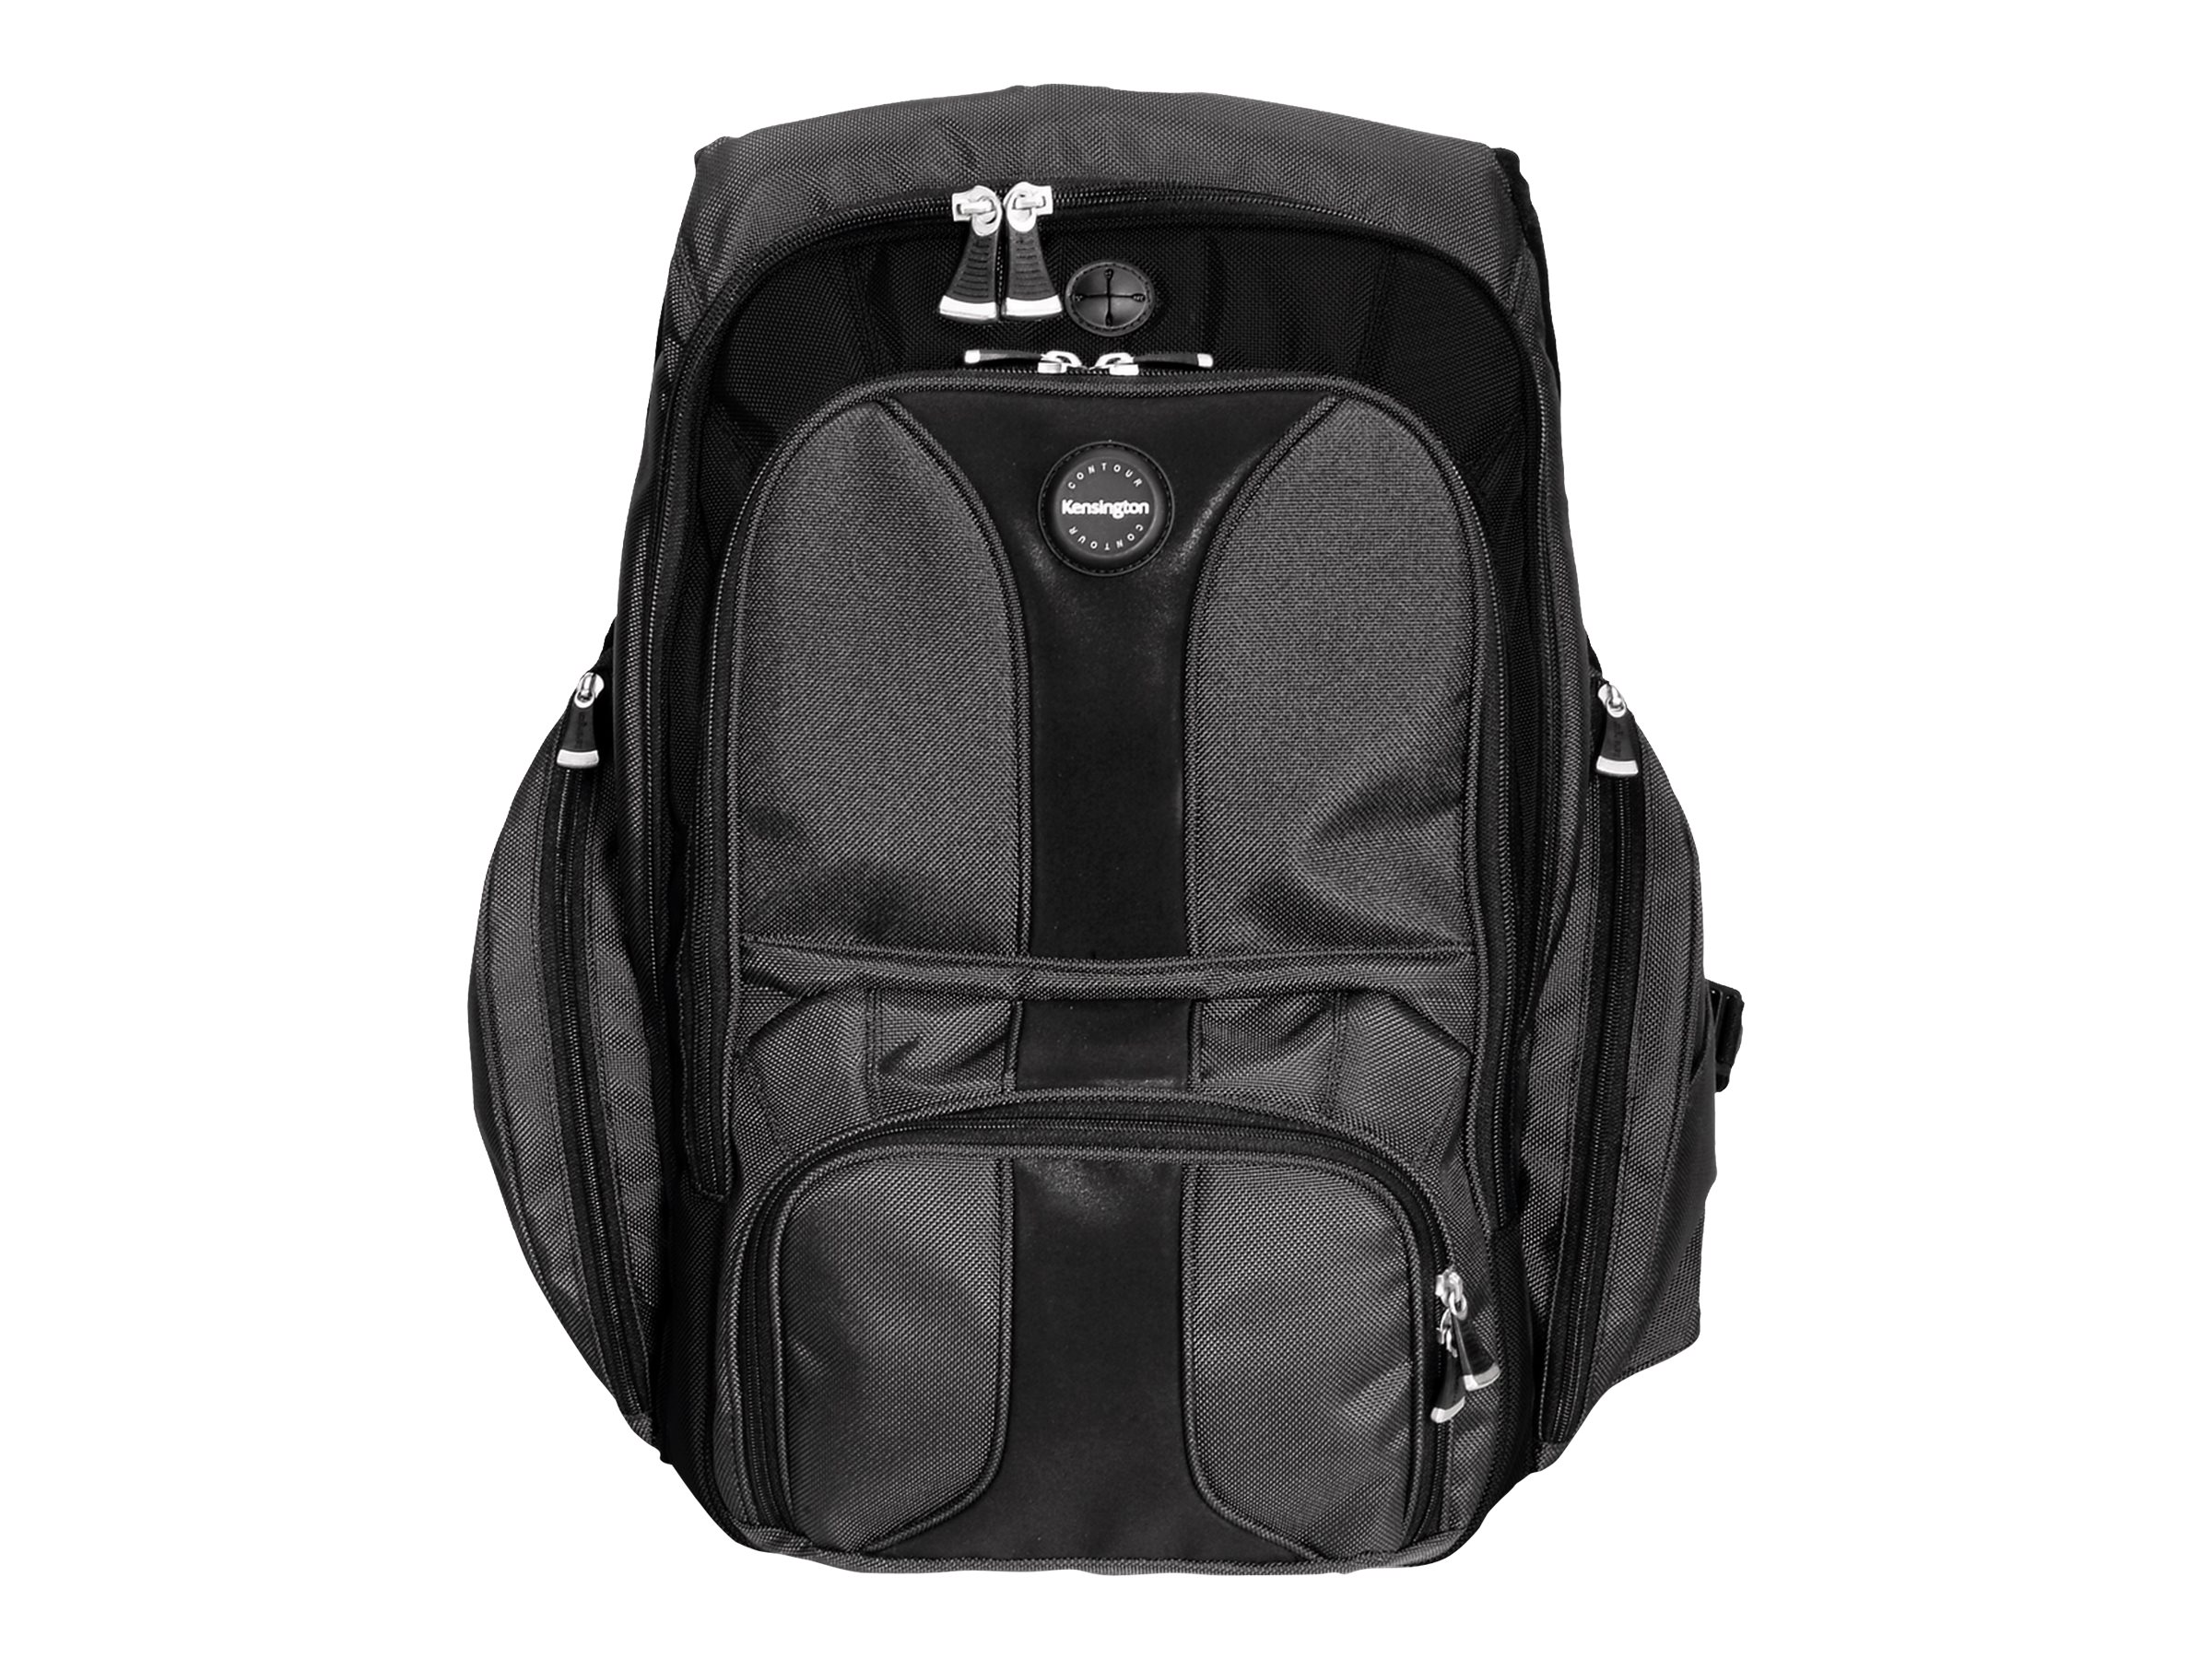 Kensington Contour Notebook Backpack with Adjustable Lumbar Support, 62238A